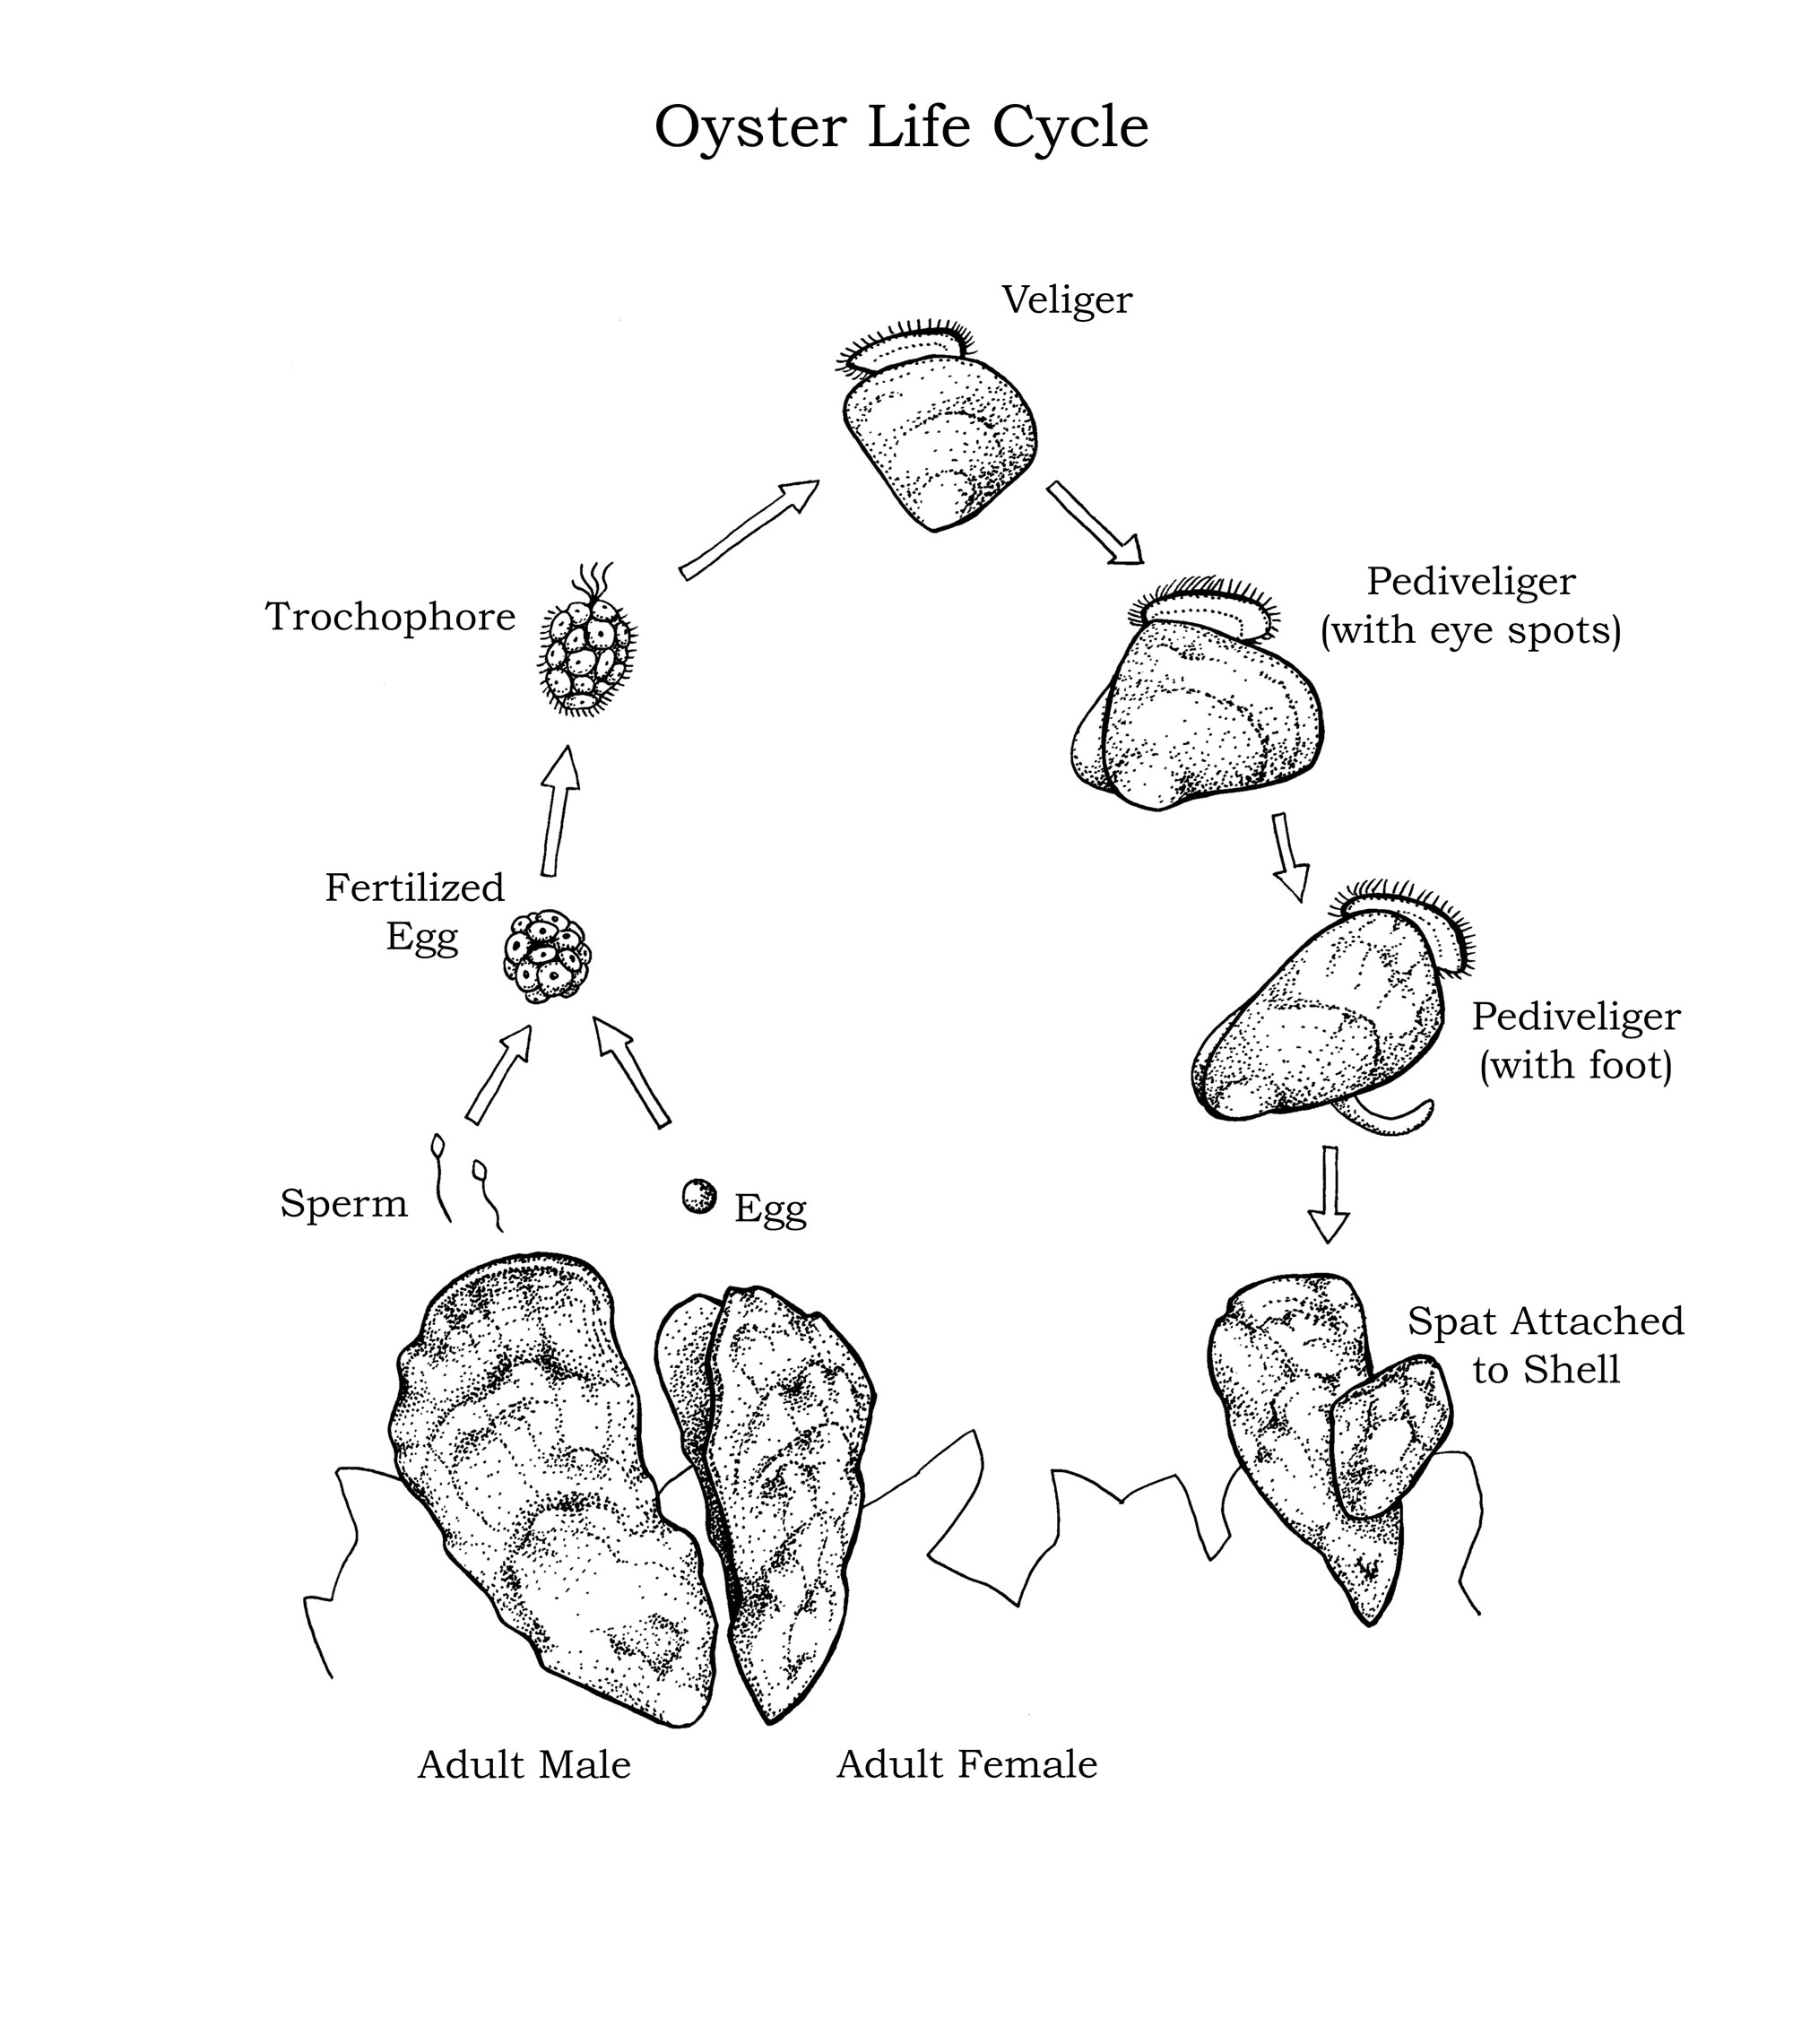 Illustration of oyster life cycle by Mary Koger